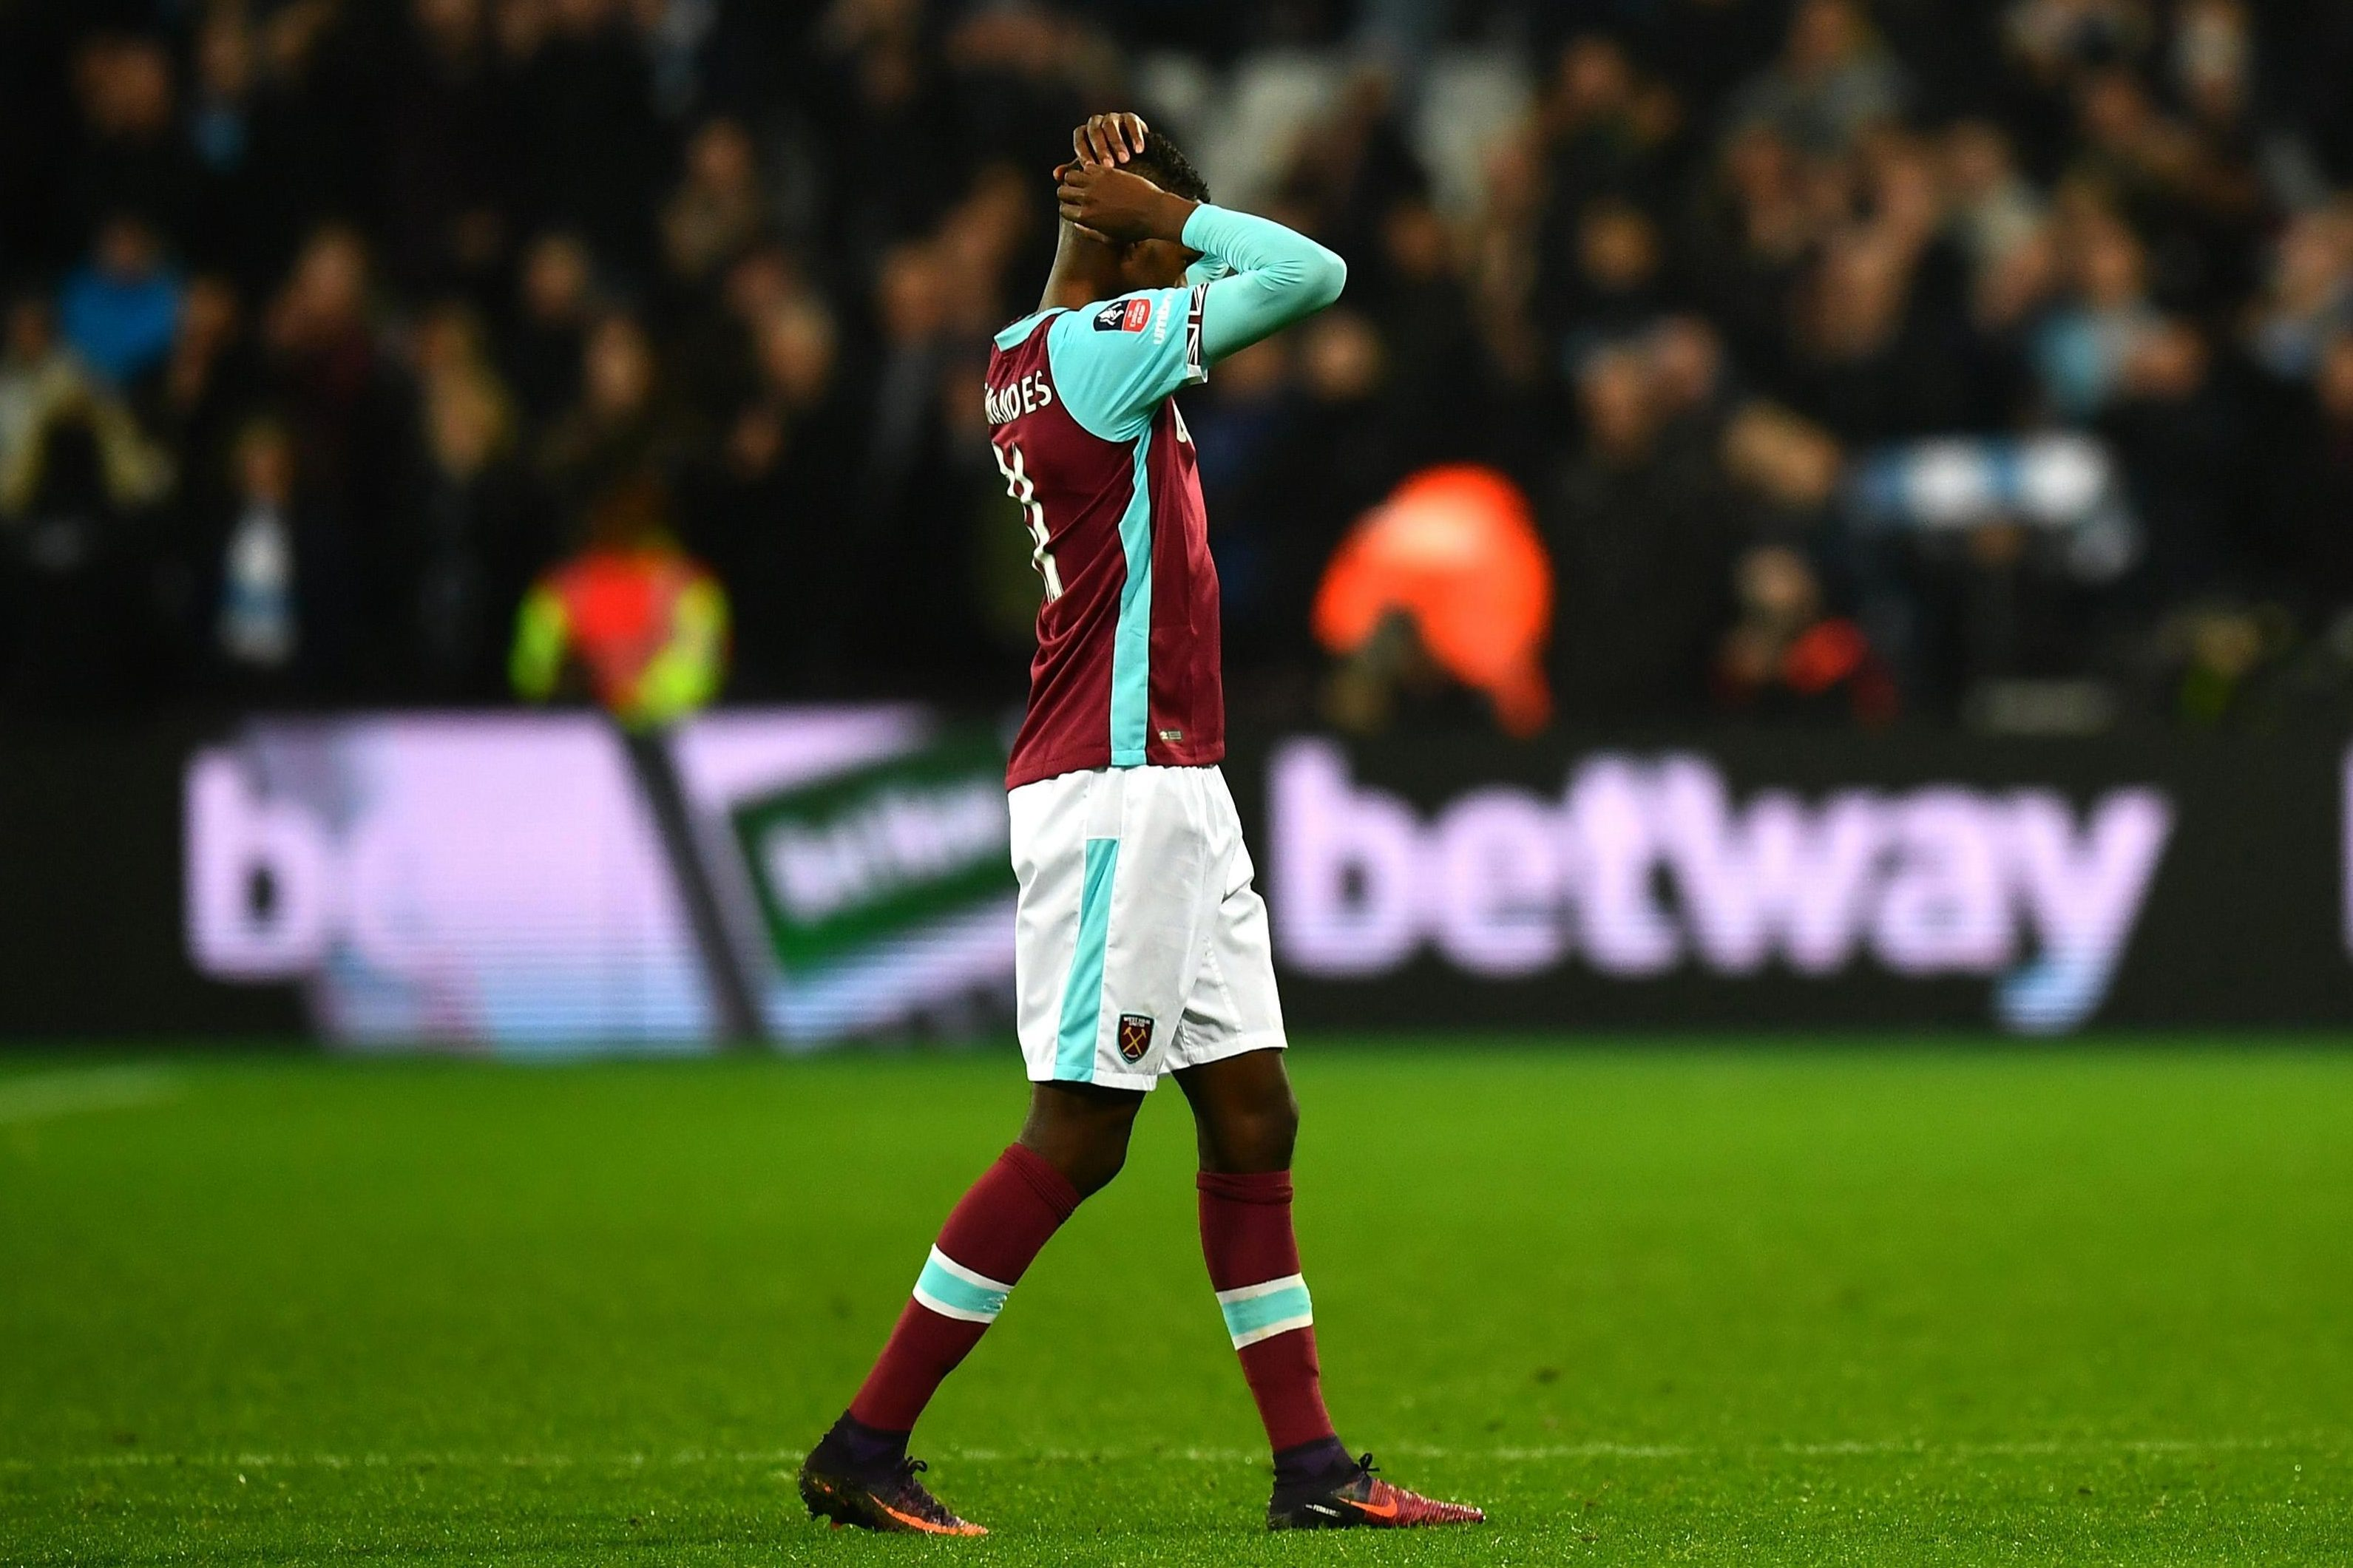 Edimilson Fernandes struggled with injuries last season - limiting his playing time